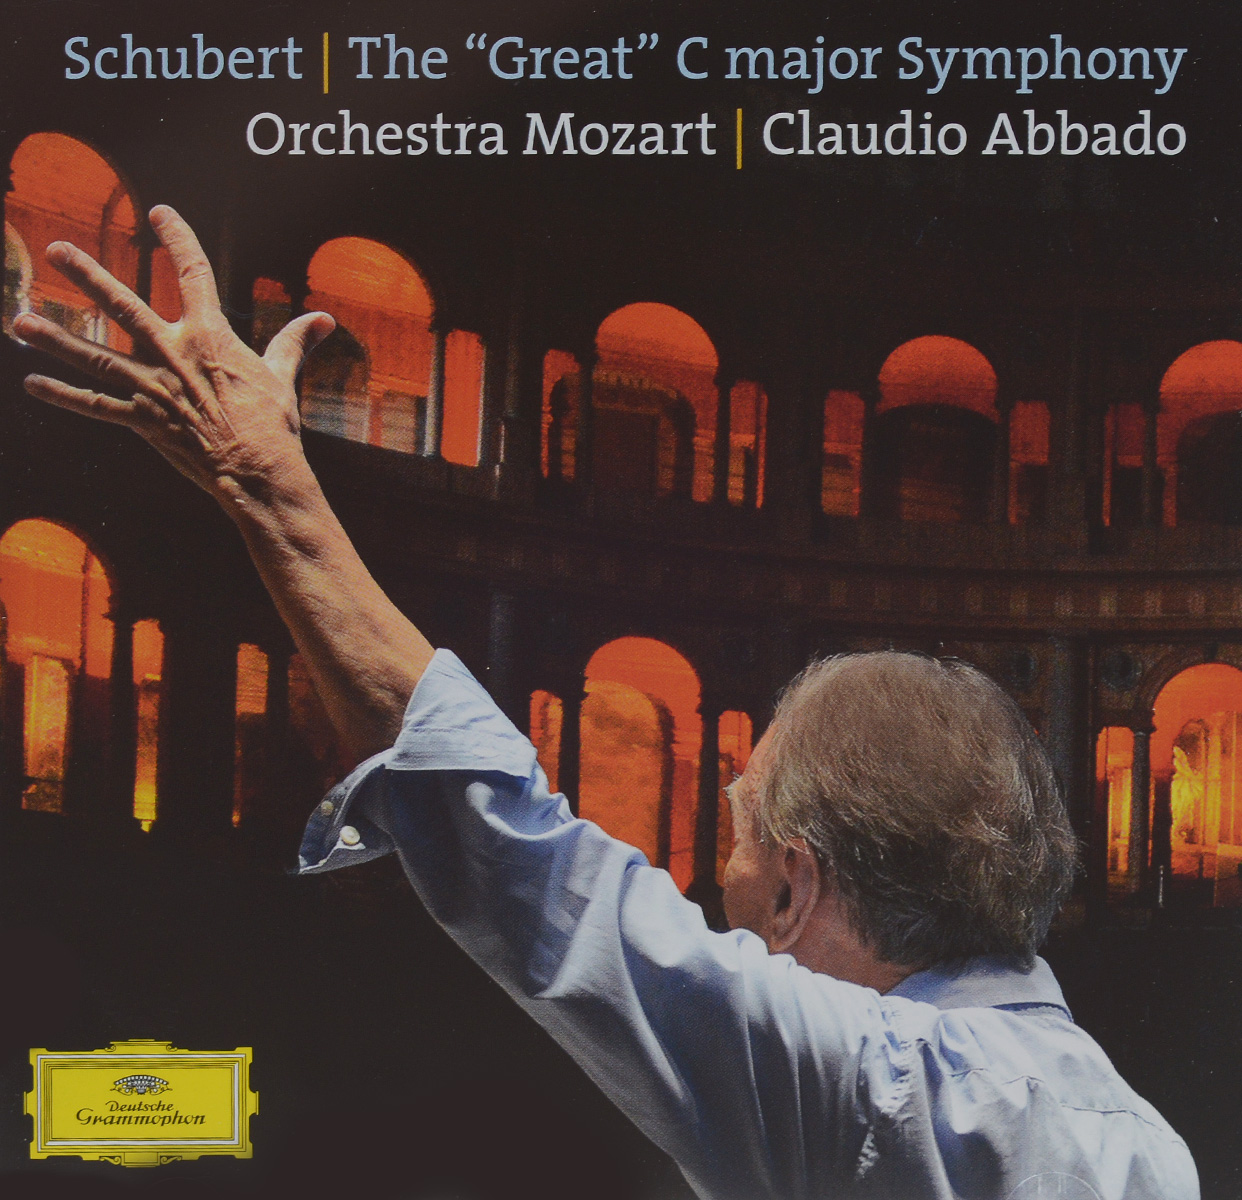 Клаудио Аббадо,Orchestra Mozart Claudio Abbado. Schubert: The Great C Major Symphony long yi taishan jade rat necklace body wangcai anti villain 8000386